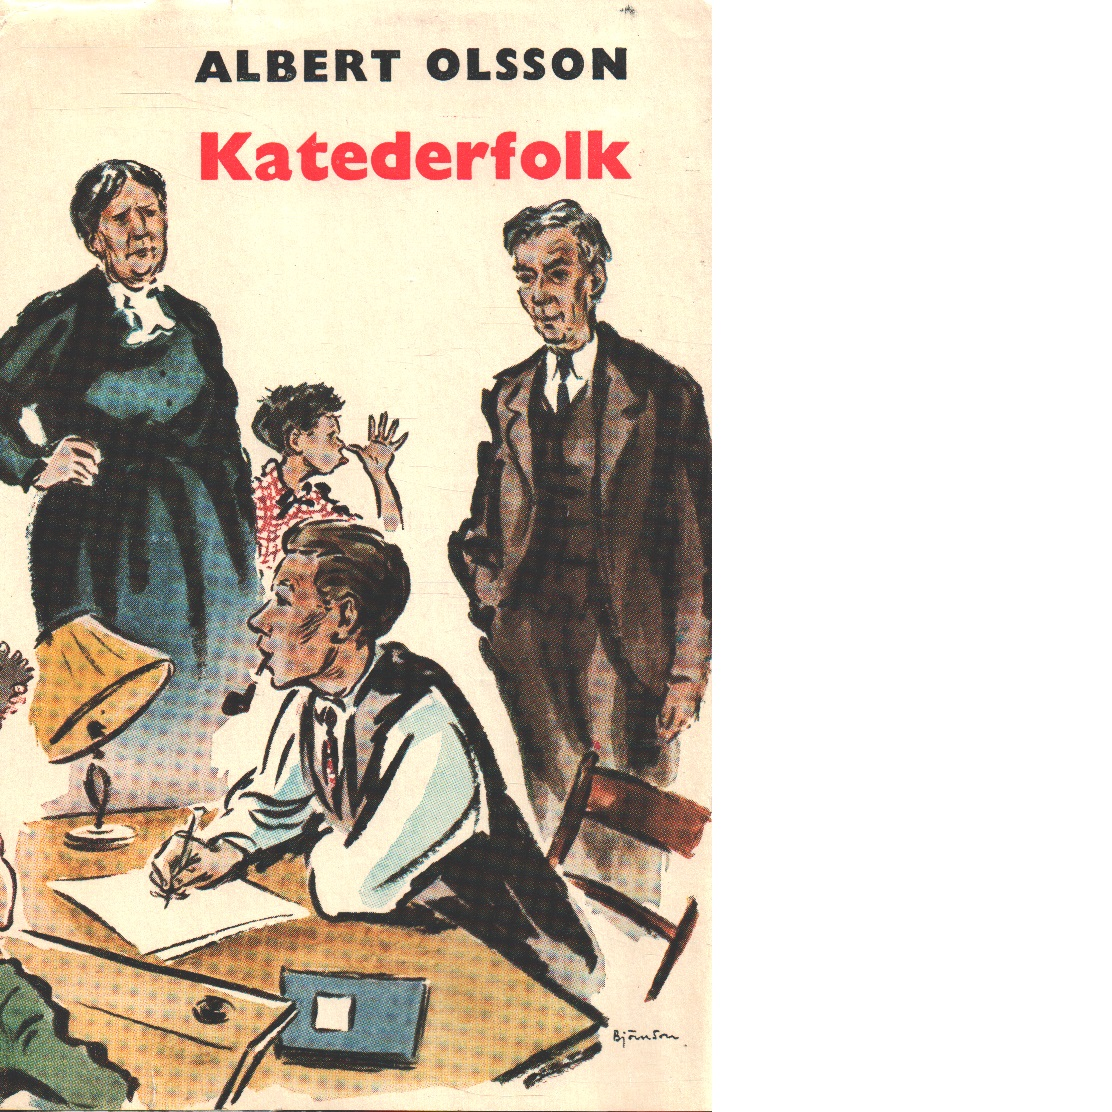 Katederfolk - Olsson, Albert